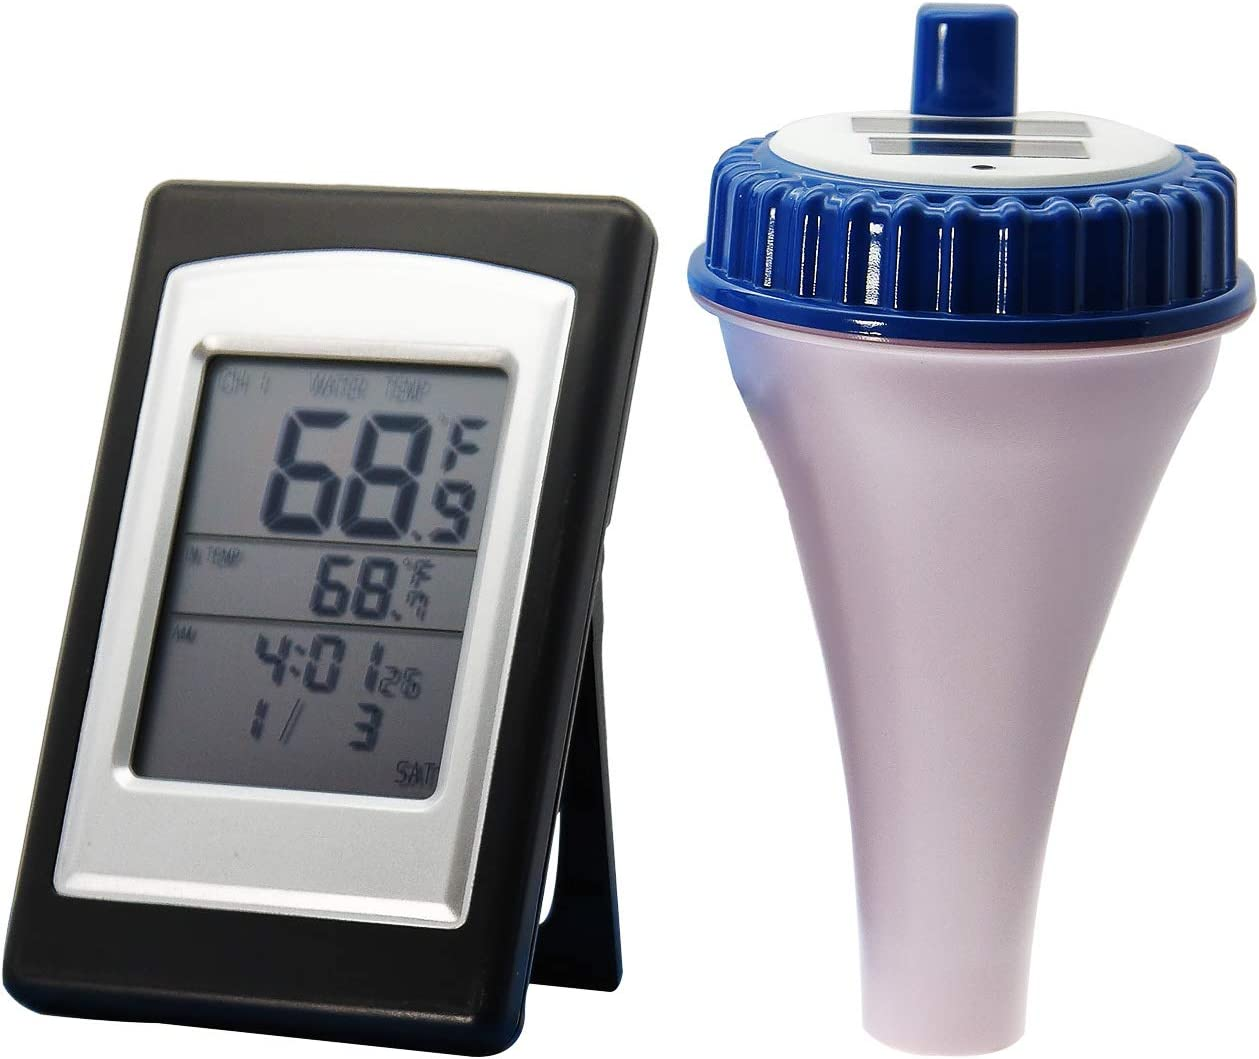 AMTAST Wireless Swimming Pool Thermometer Water Temperature Floating Pool Thermometer with Solar Energy for Swimming Pools Spas Hot Tubs Ponds Aquarium Fish Ponds